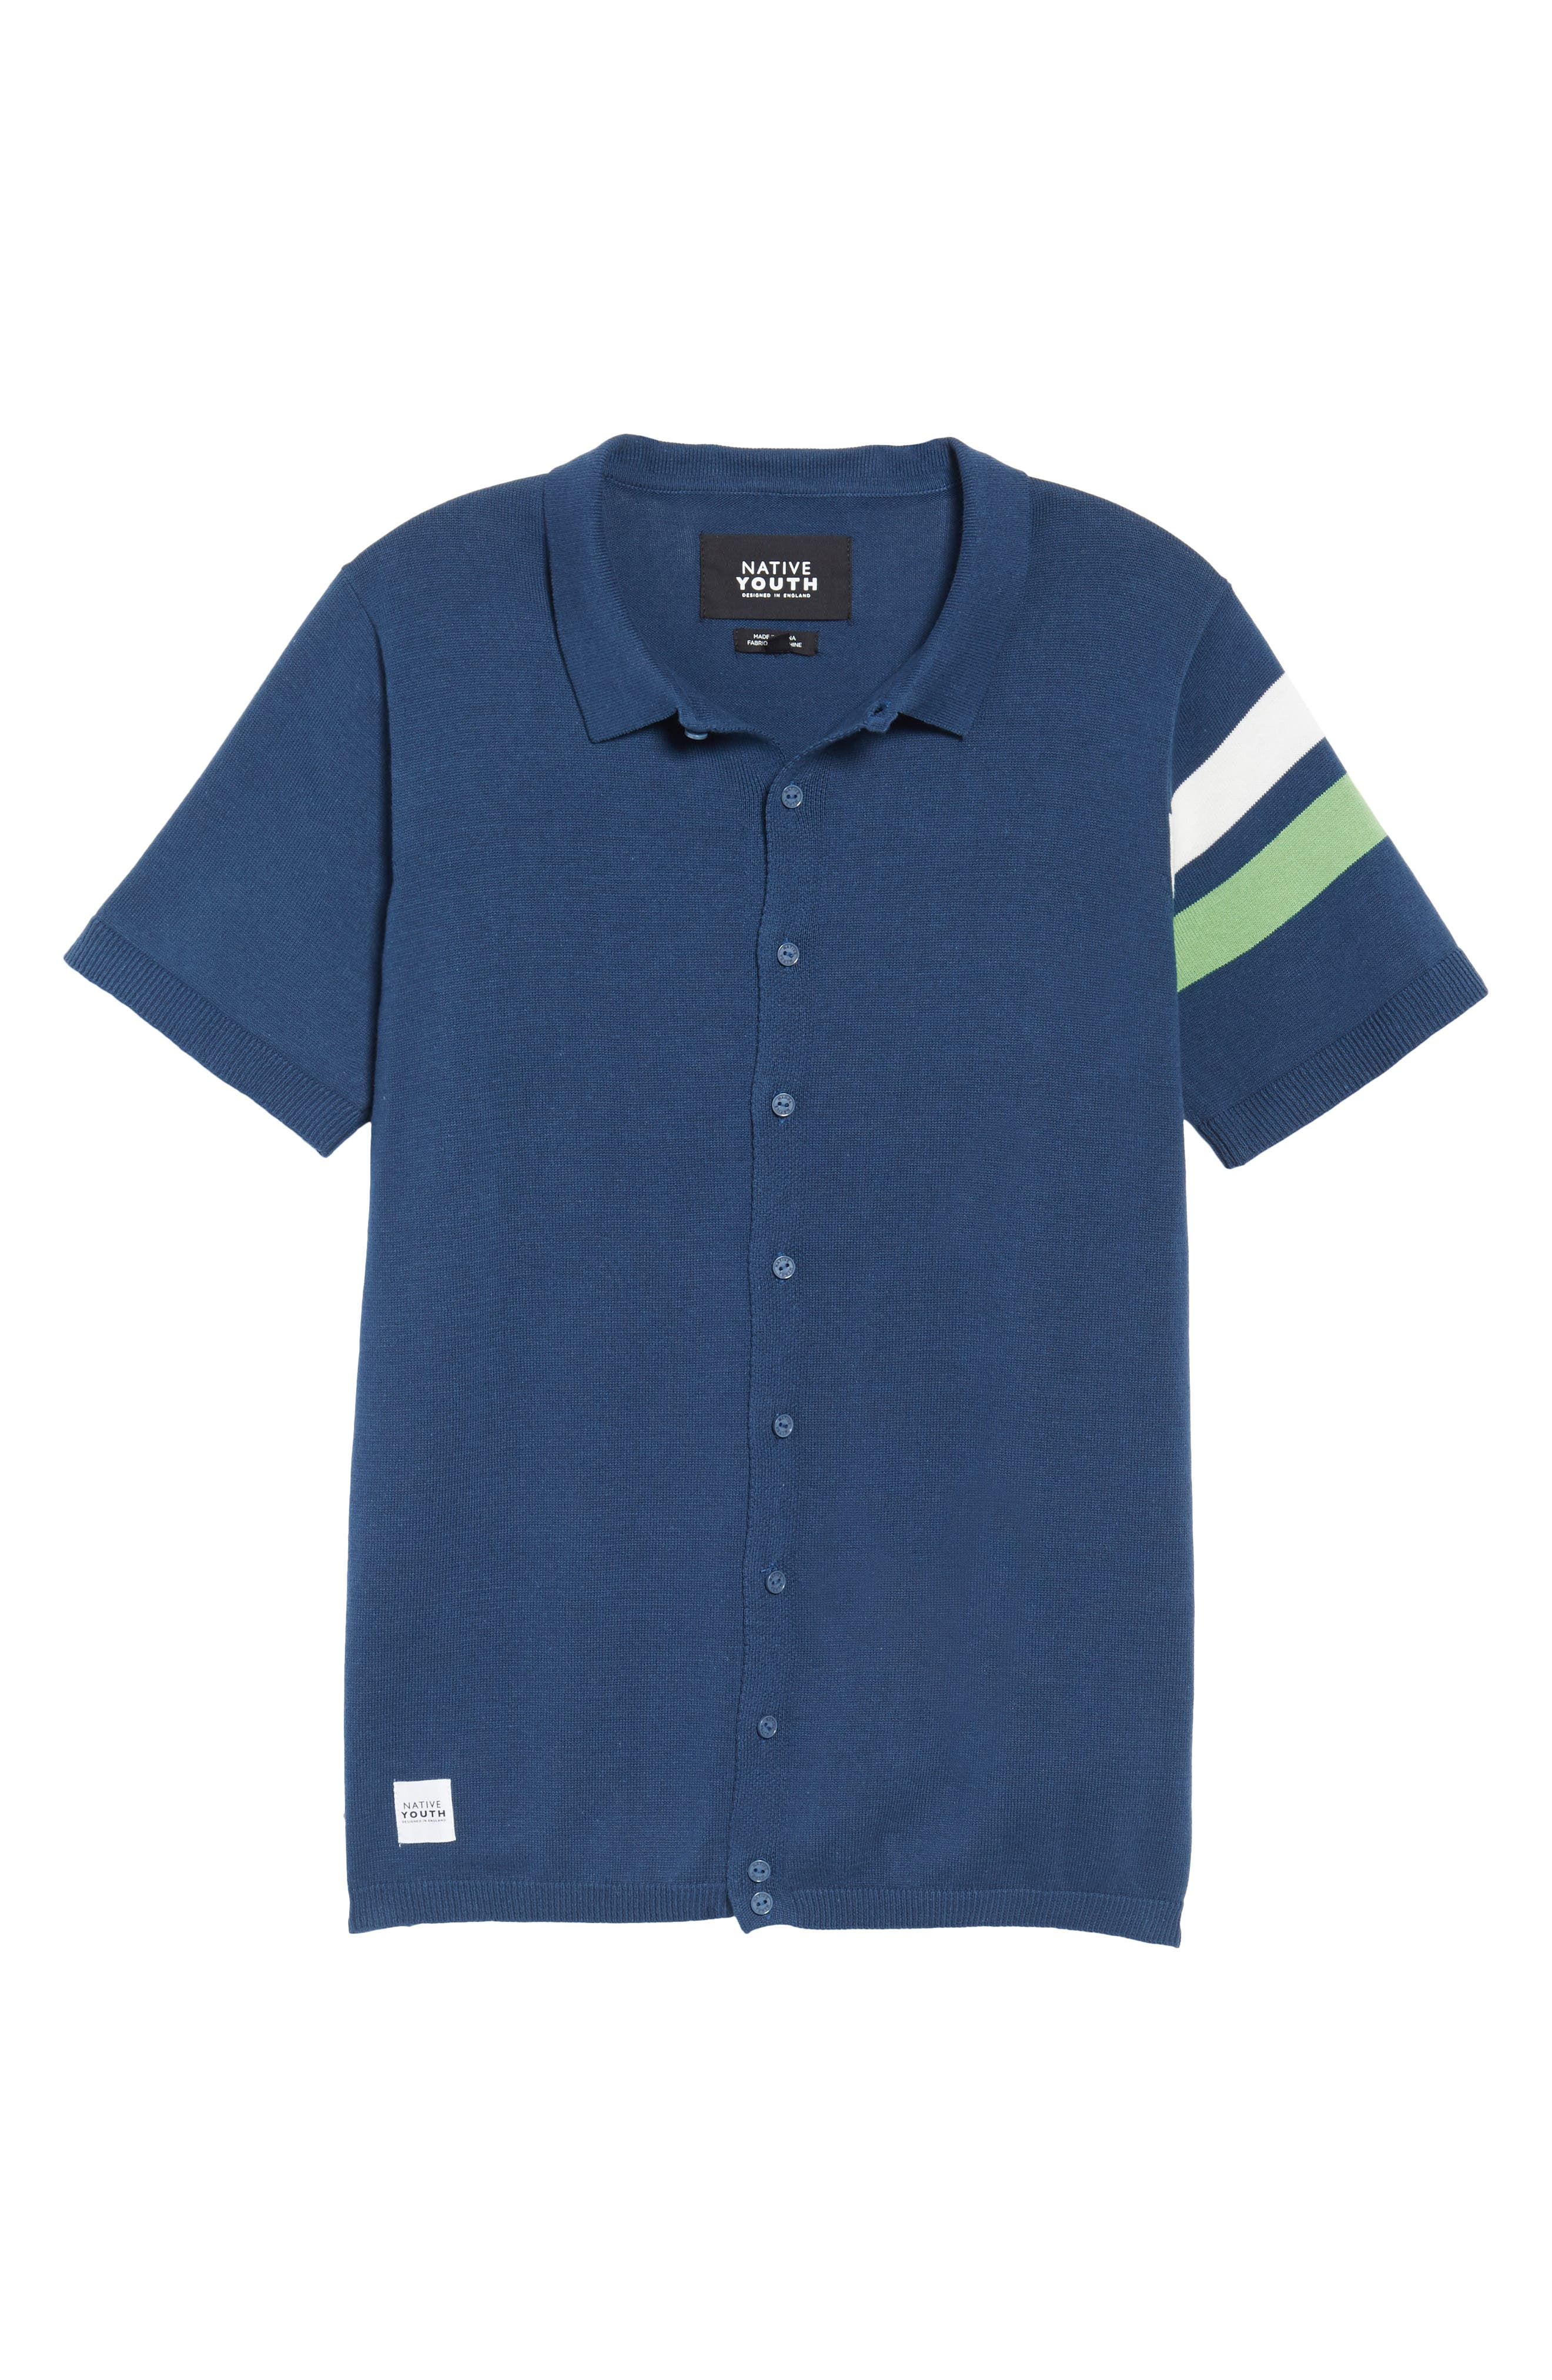 Abyss Knit Shirt,                             Alternate thumbnail 6, color,                             Navy